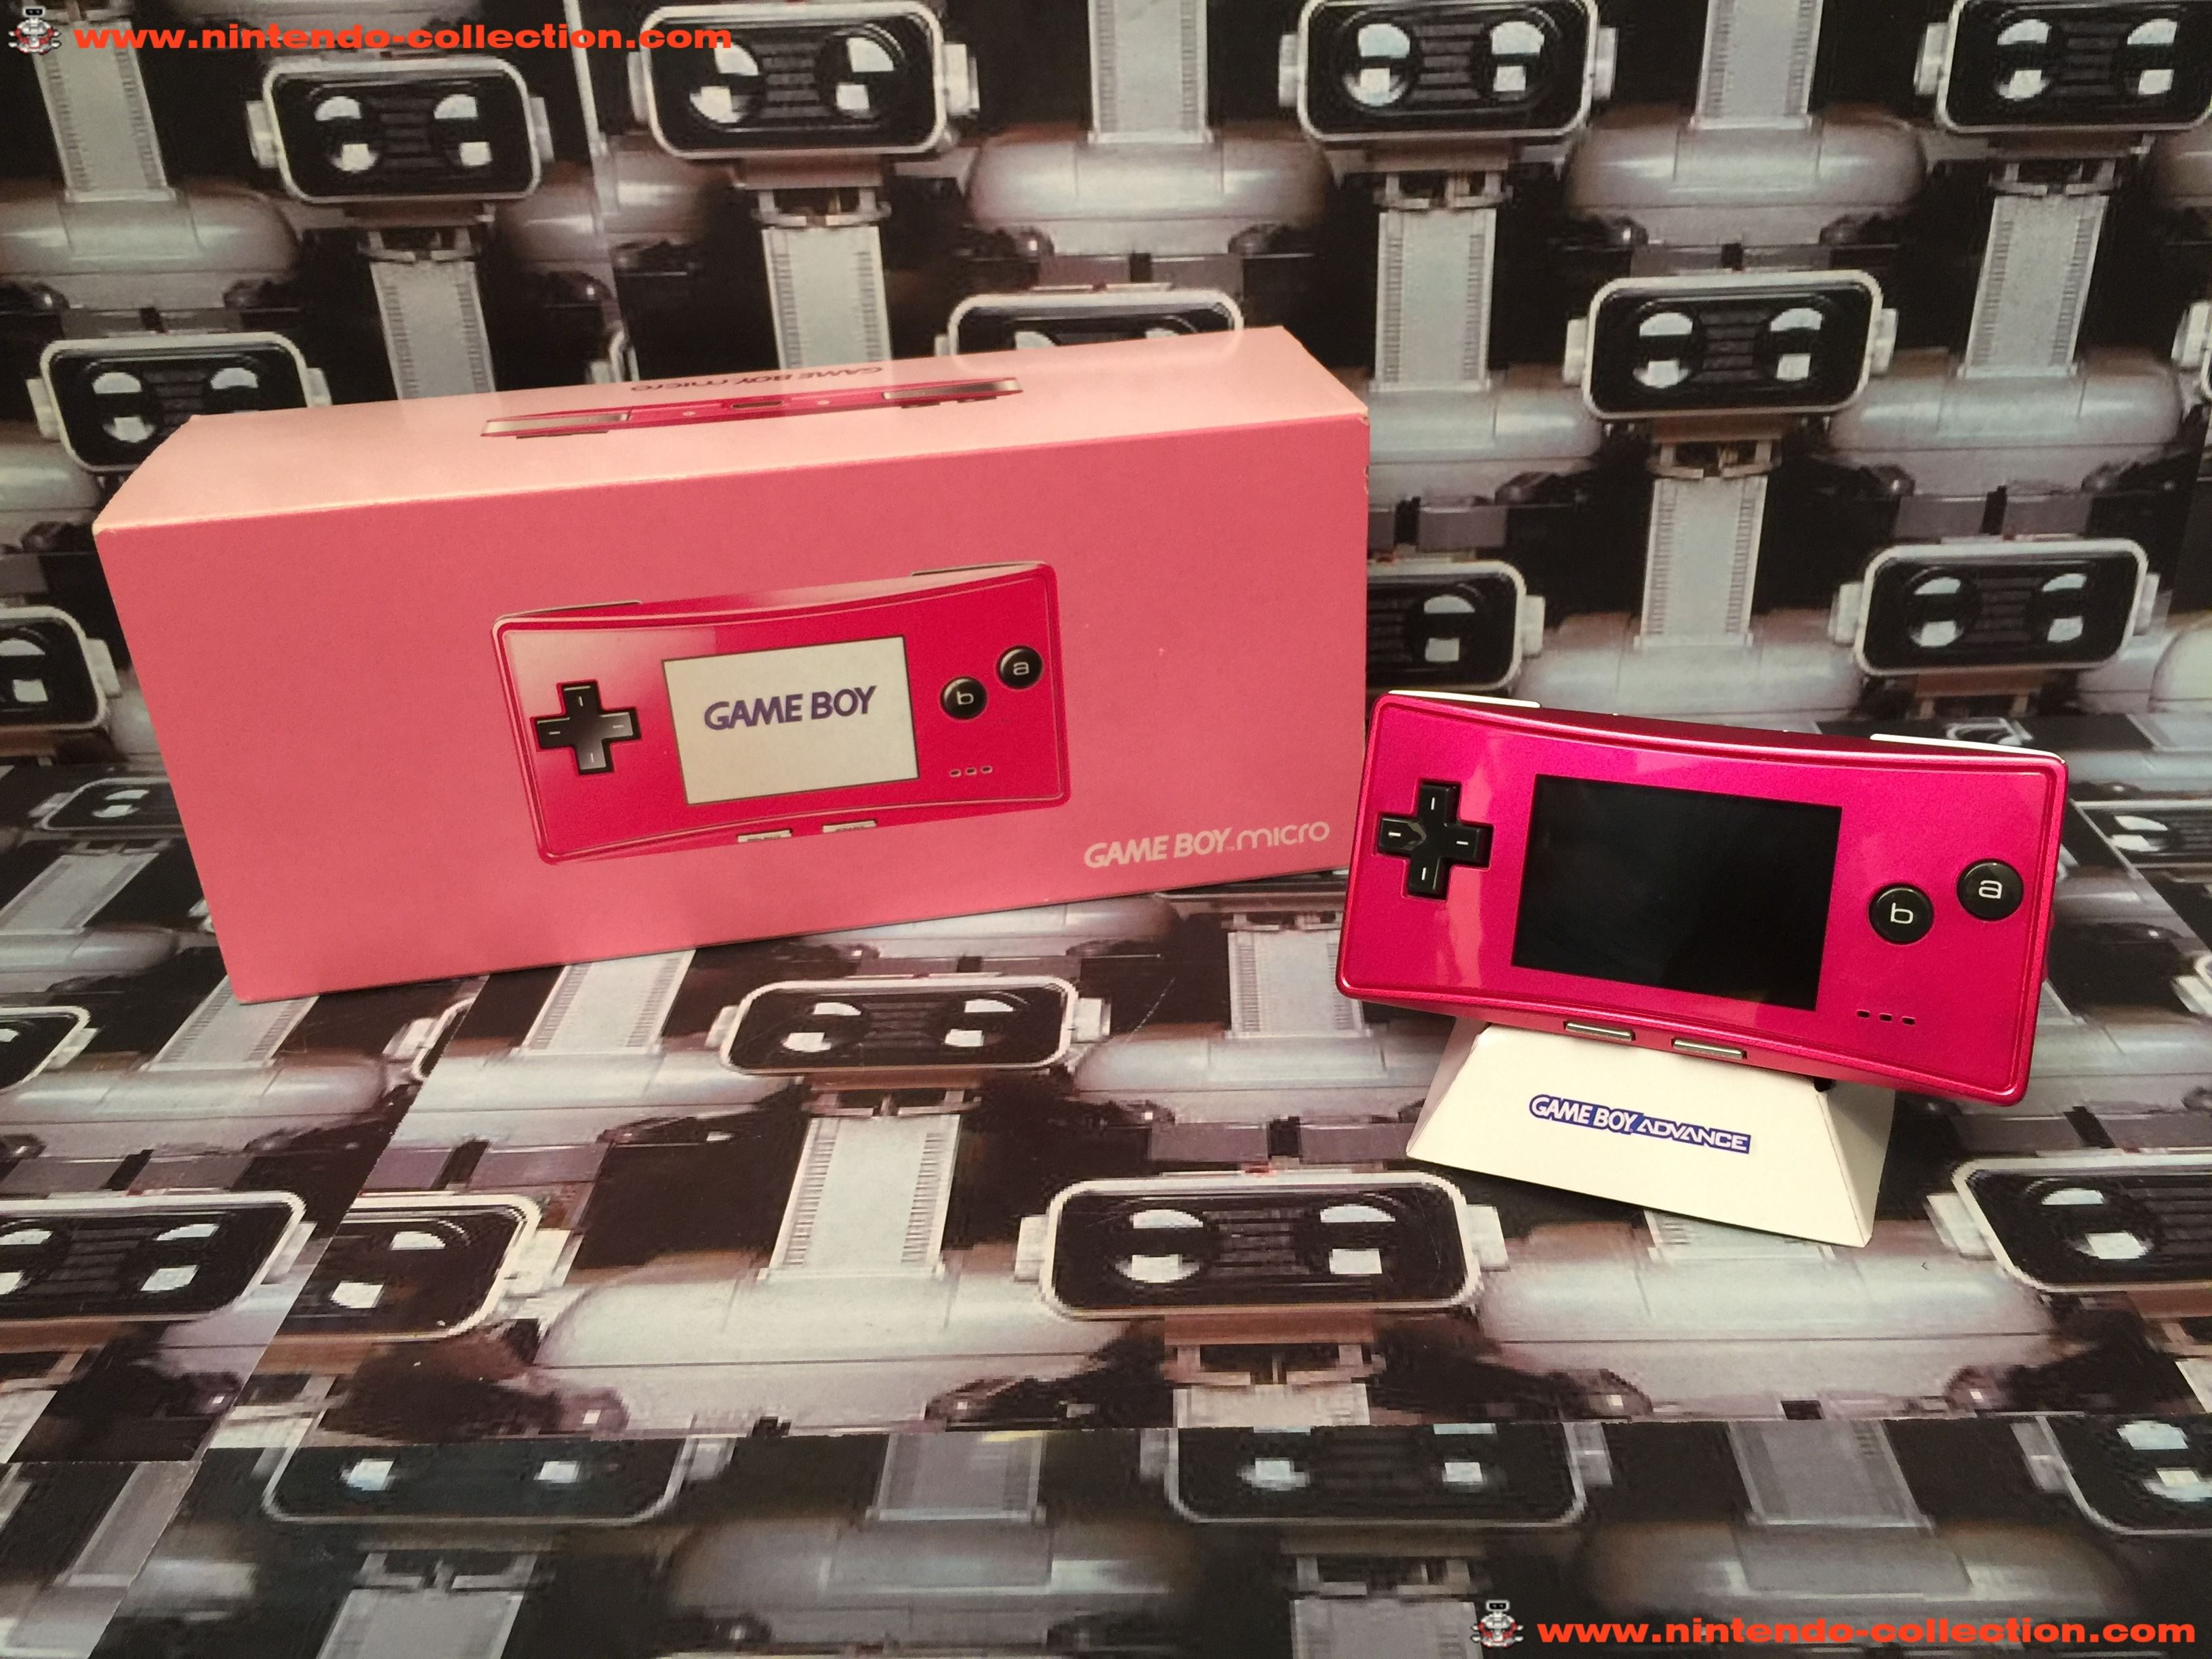 www.nintendo-collection.com - Gameboy Advance GBA Micro Pink rose european version europeenne  versi